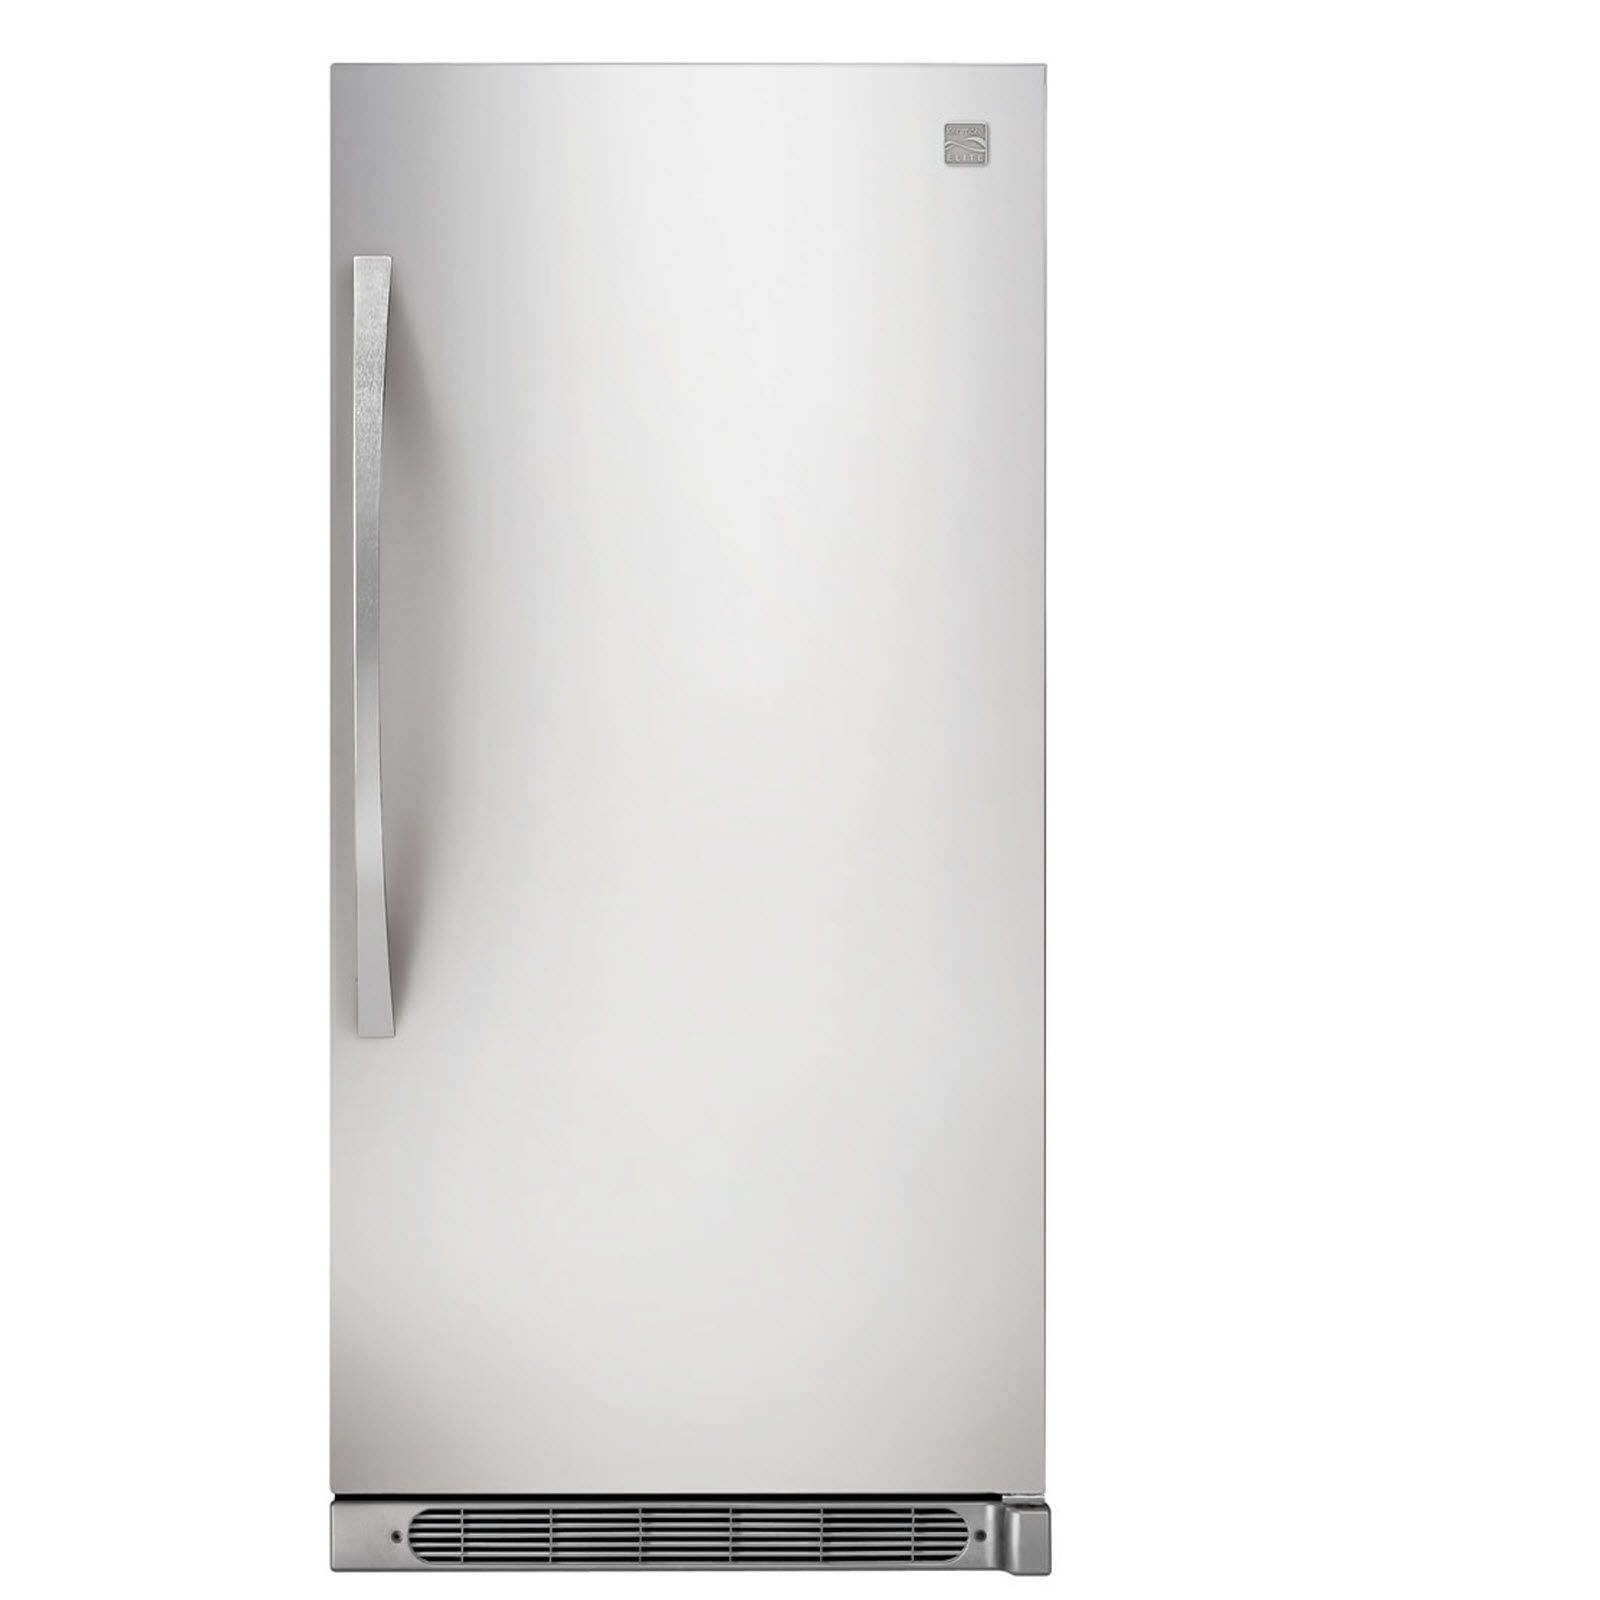 Kenmore Elite  18.6 cu. ft. Built-In